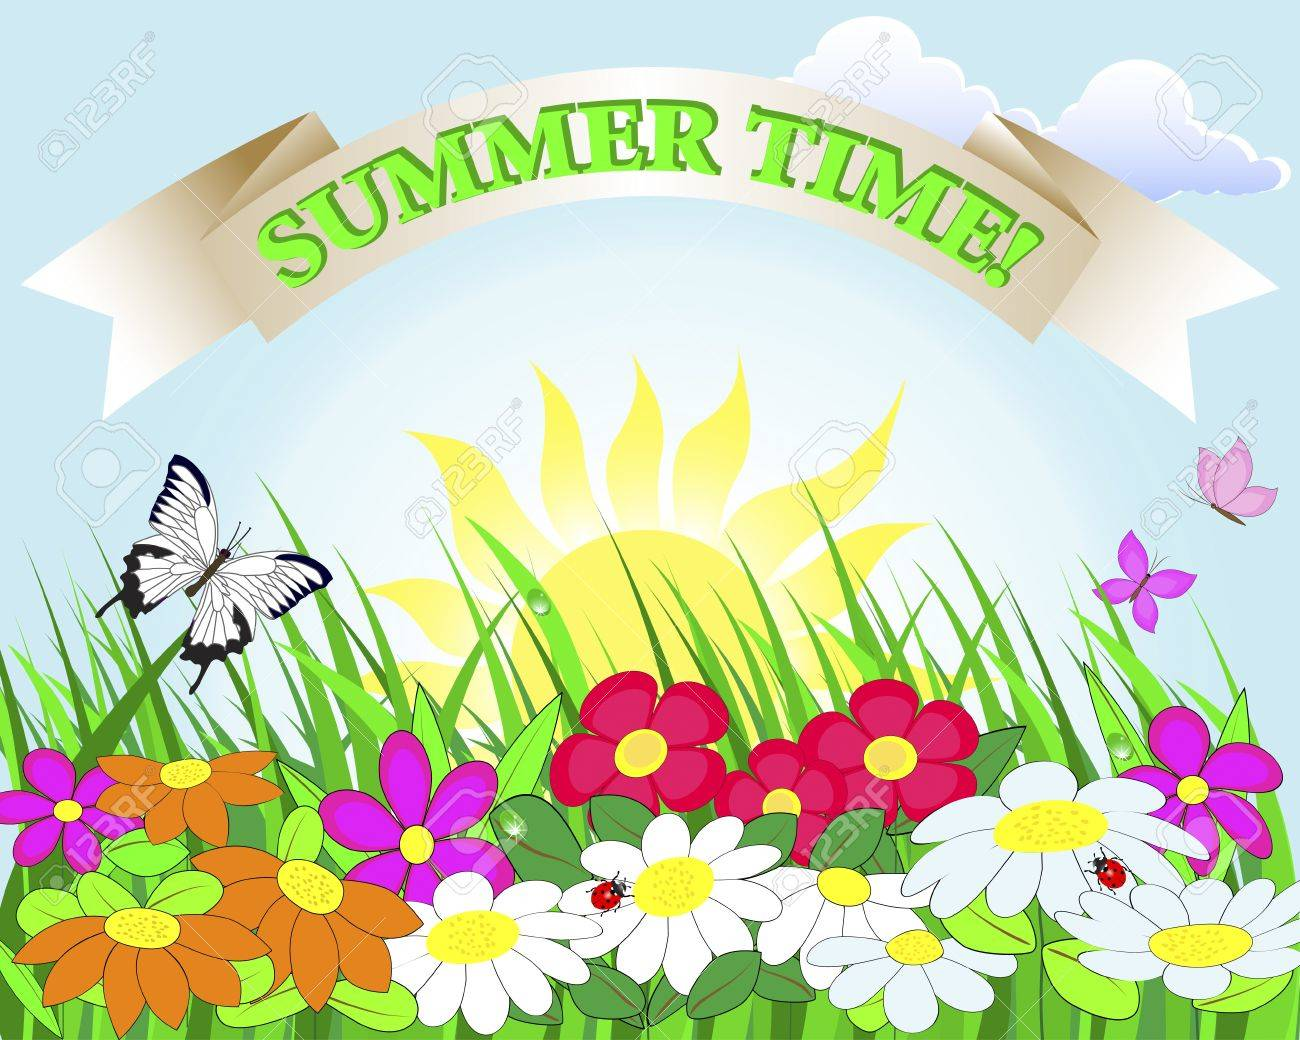 Summer banner  Flower lawn with ladybugs and butterflies   Illustration Stock Vector - 14169449